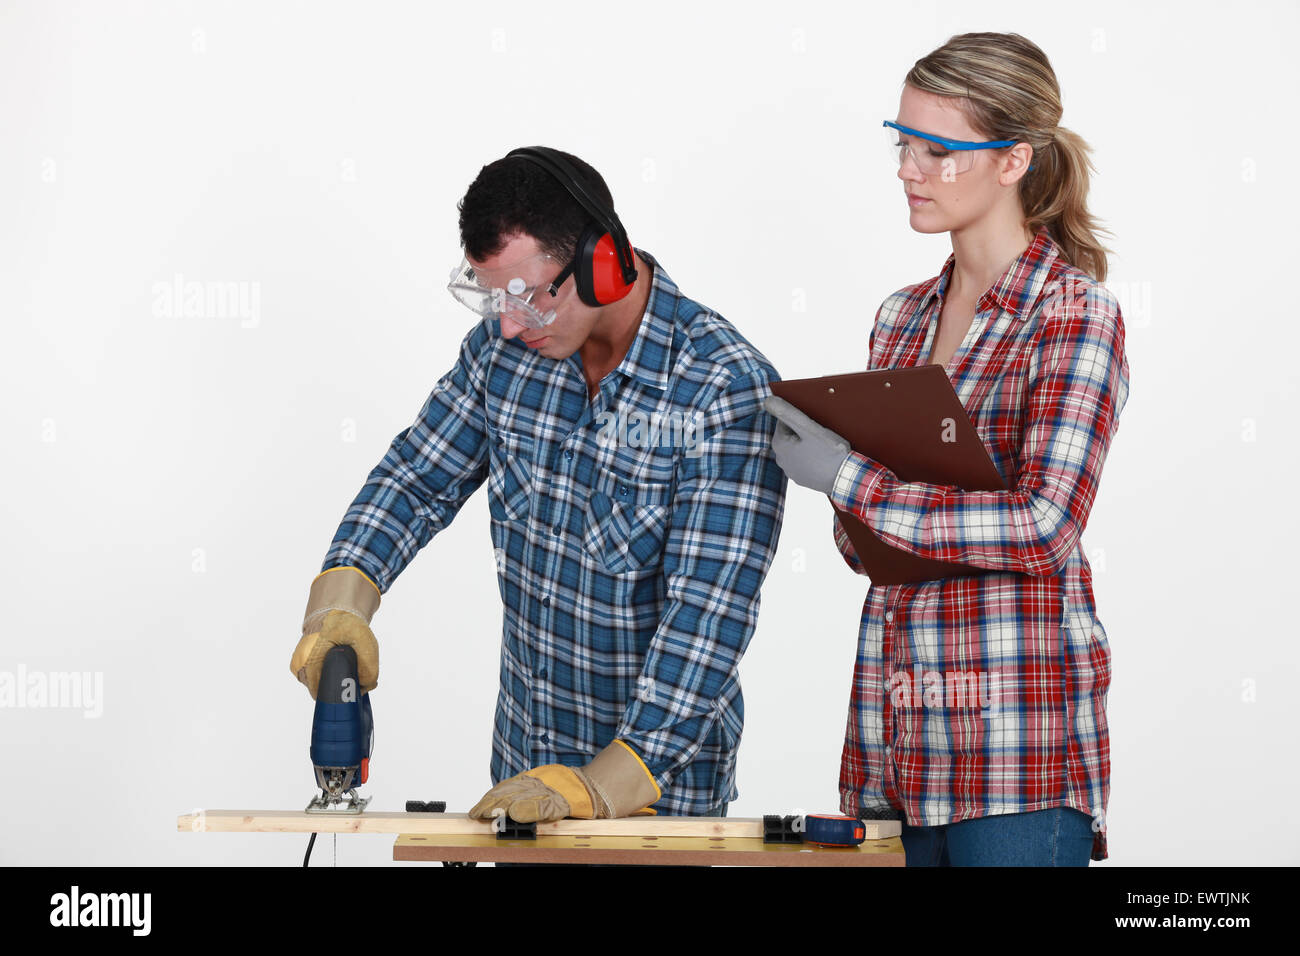 Man using band saw whilst woman supervises Stock Photo